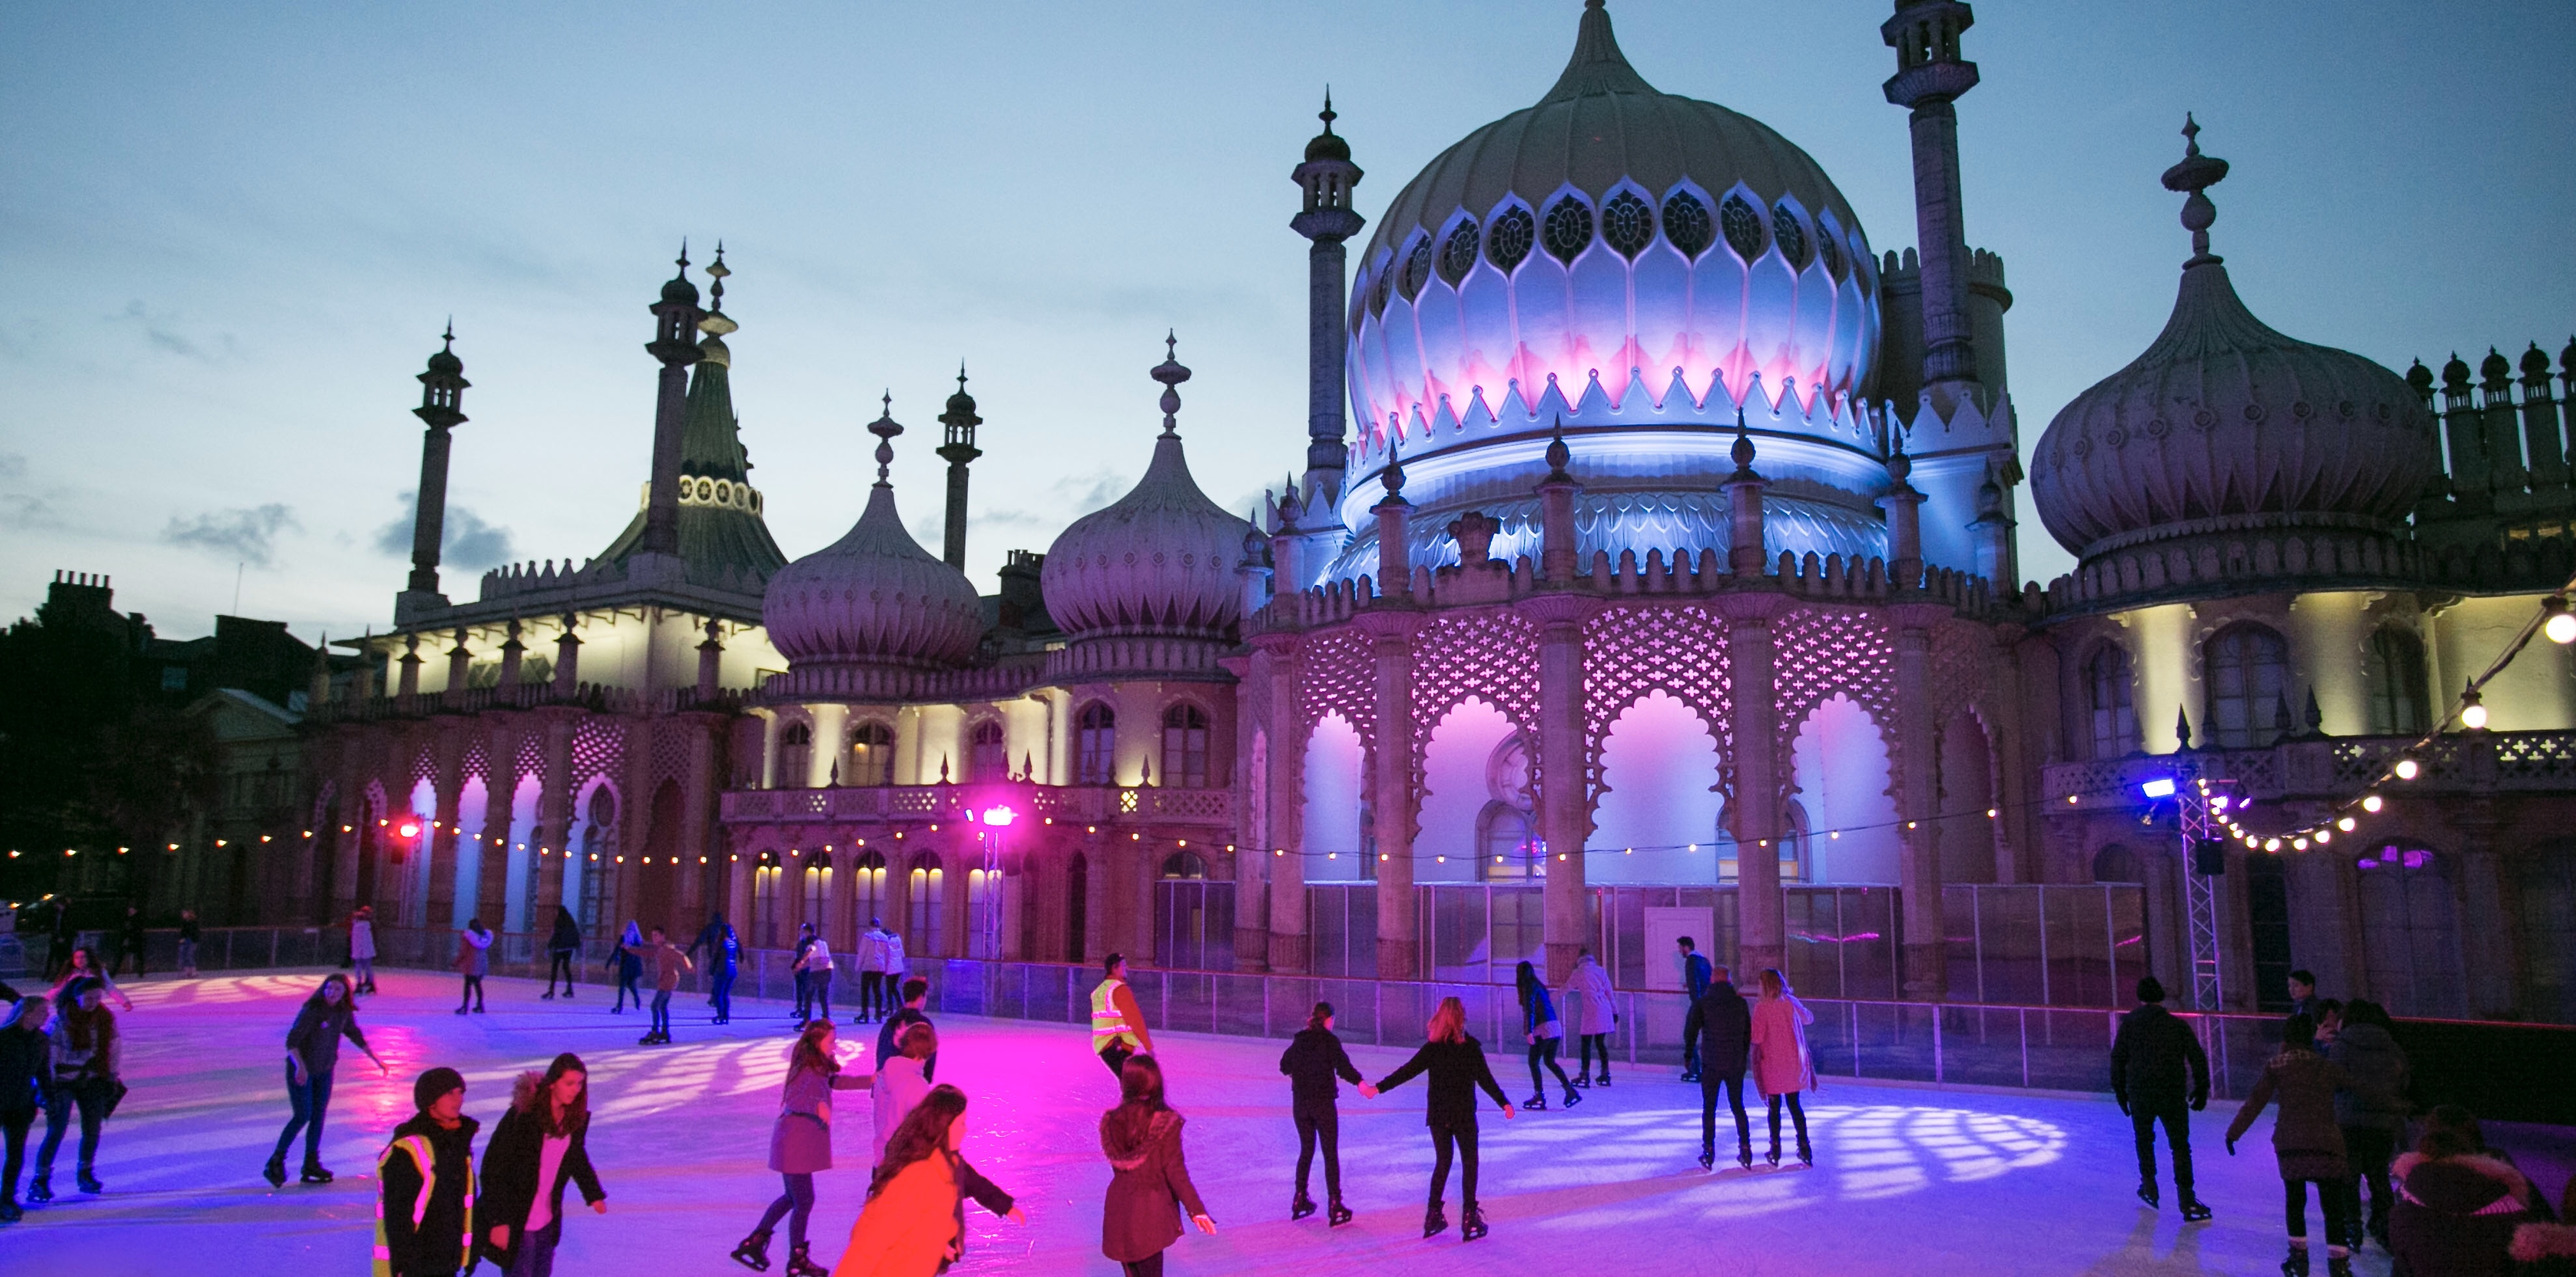 Win ice skating tickets Title Sussex Magazine www.titlesussex.co.uk